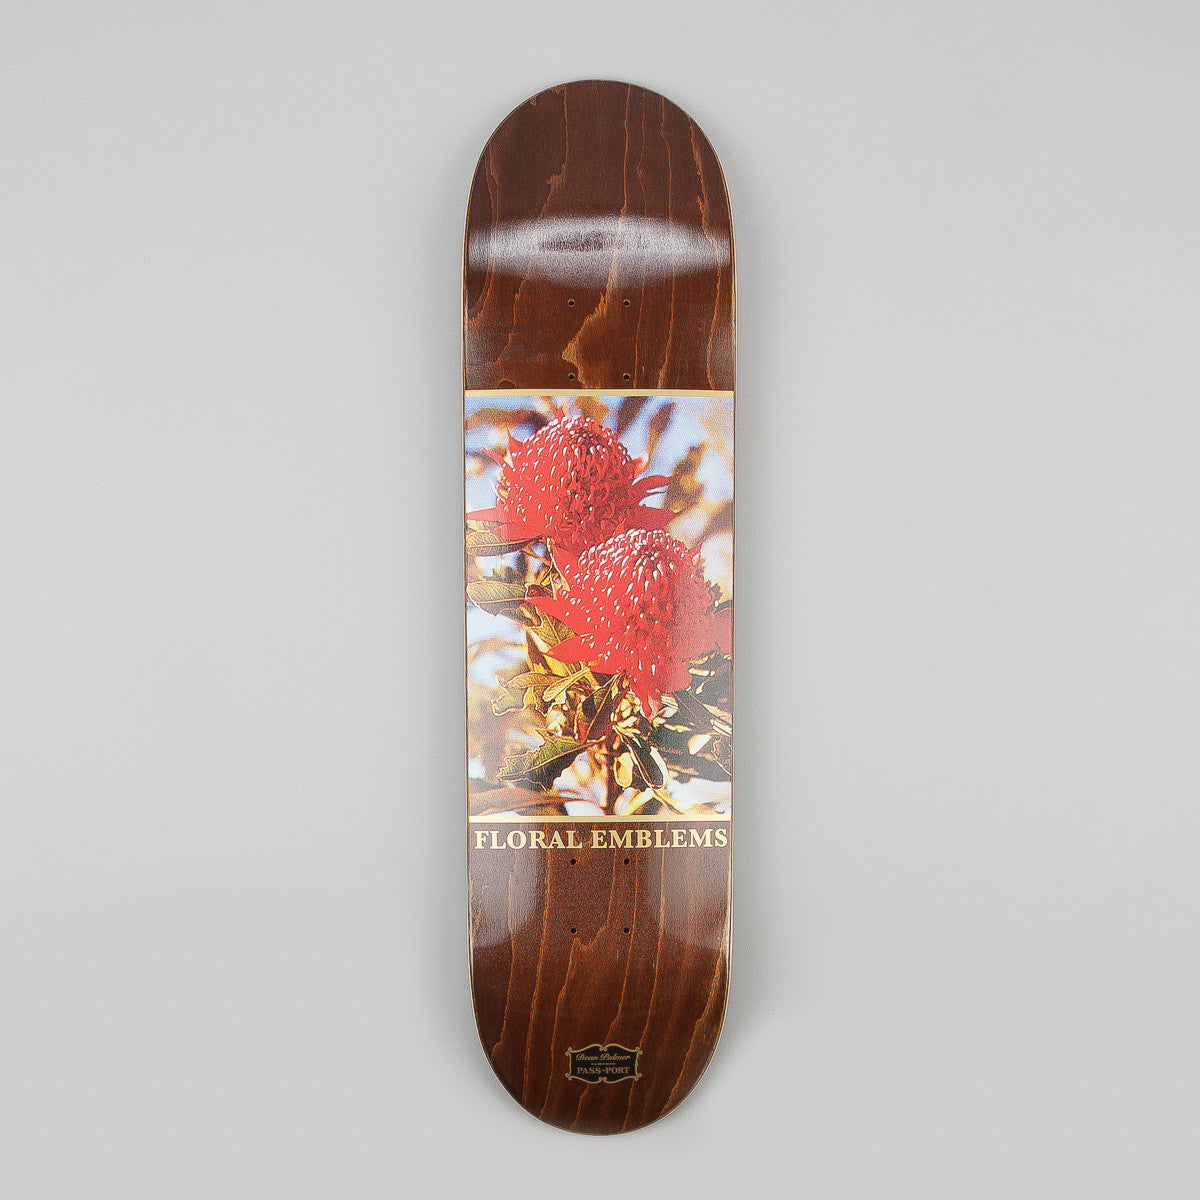 Pass Port Floral Emblems Dean Plamer Deck